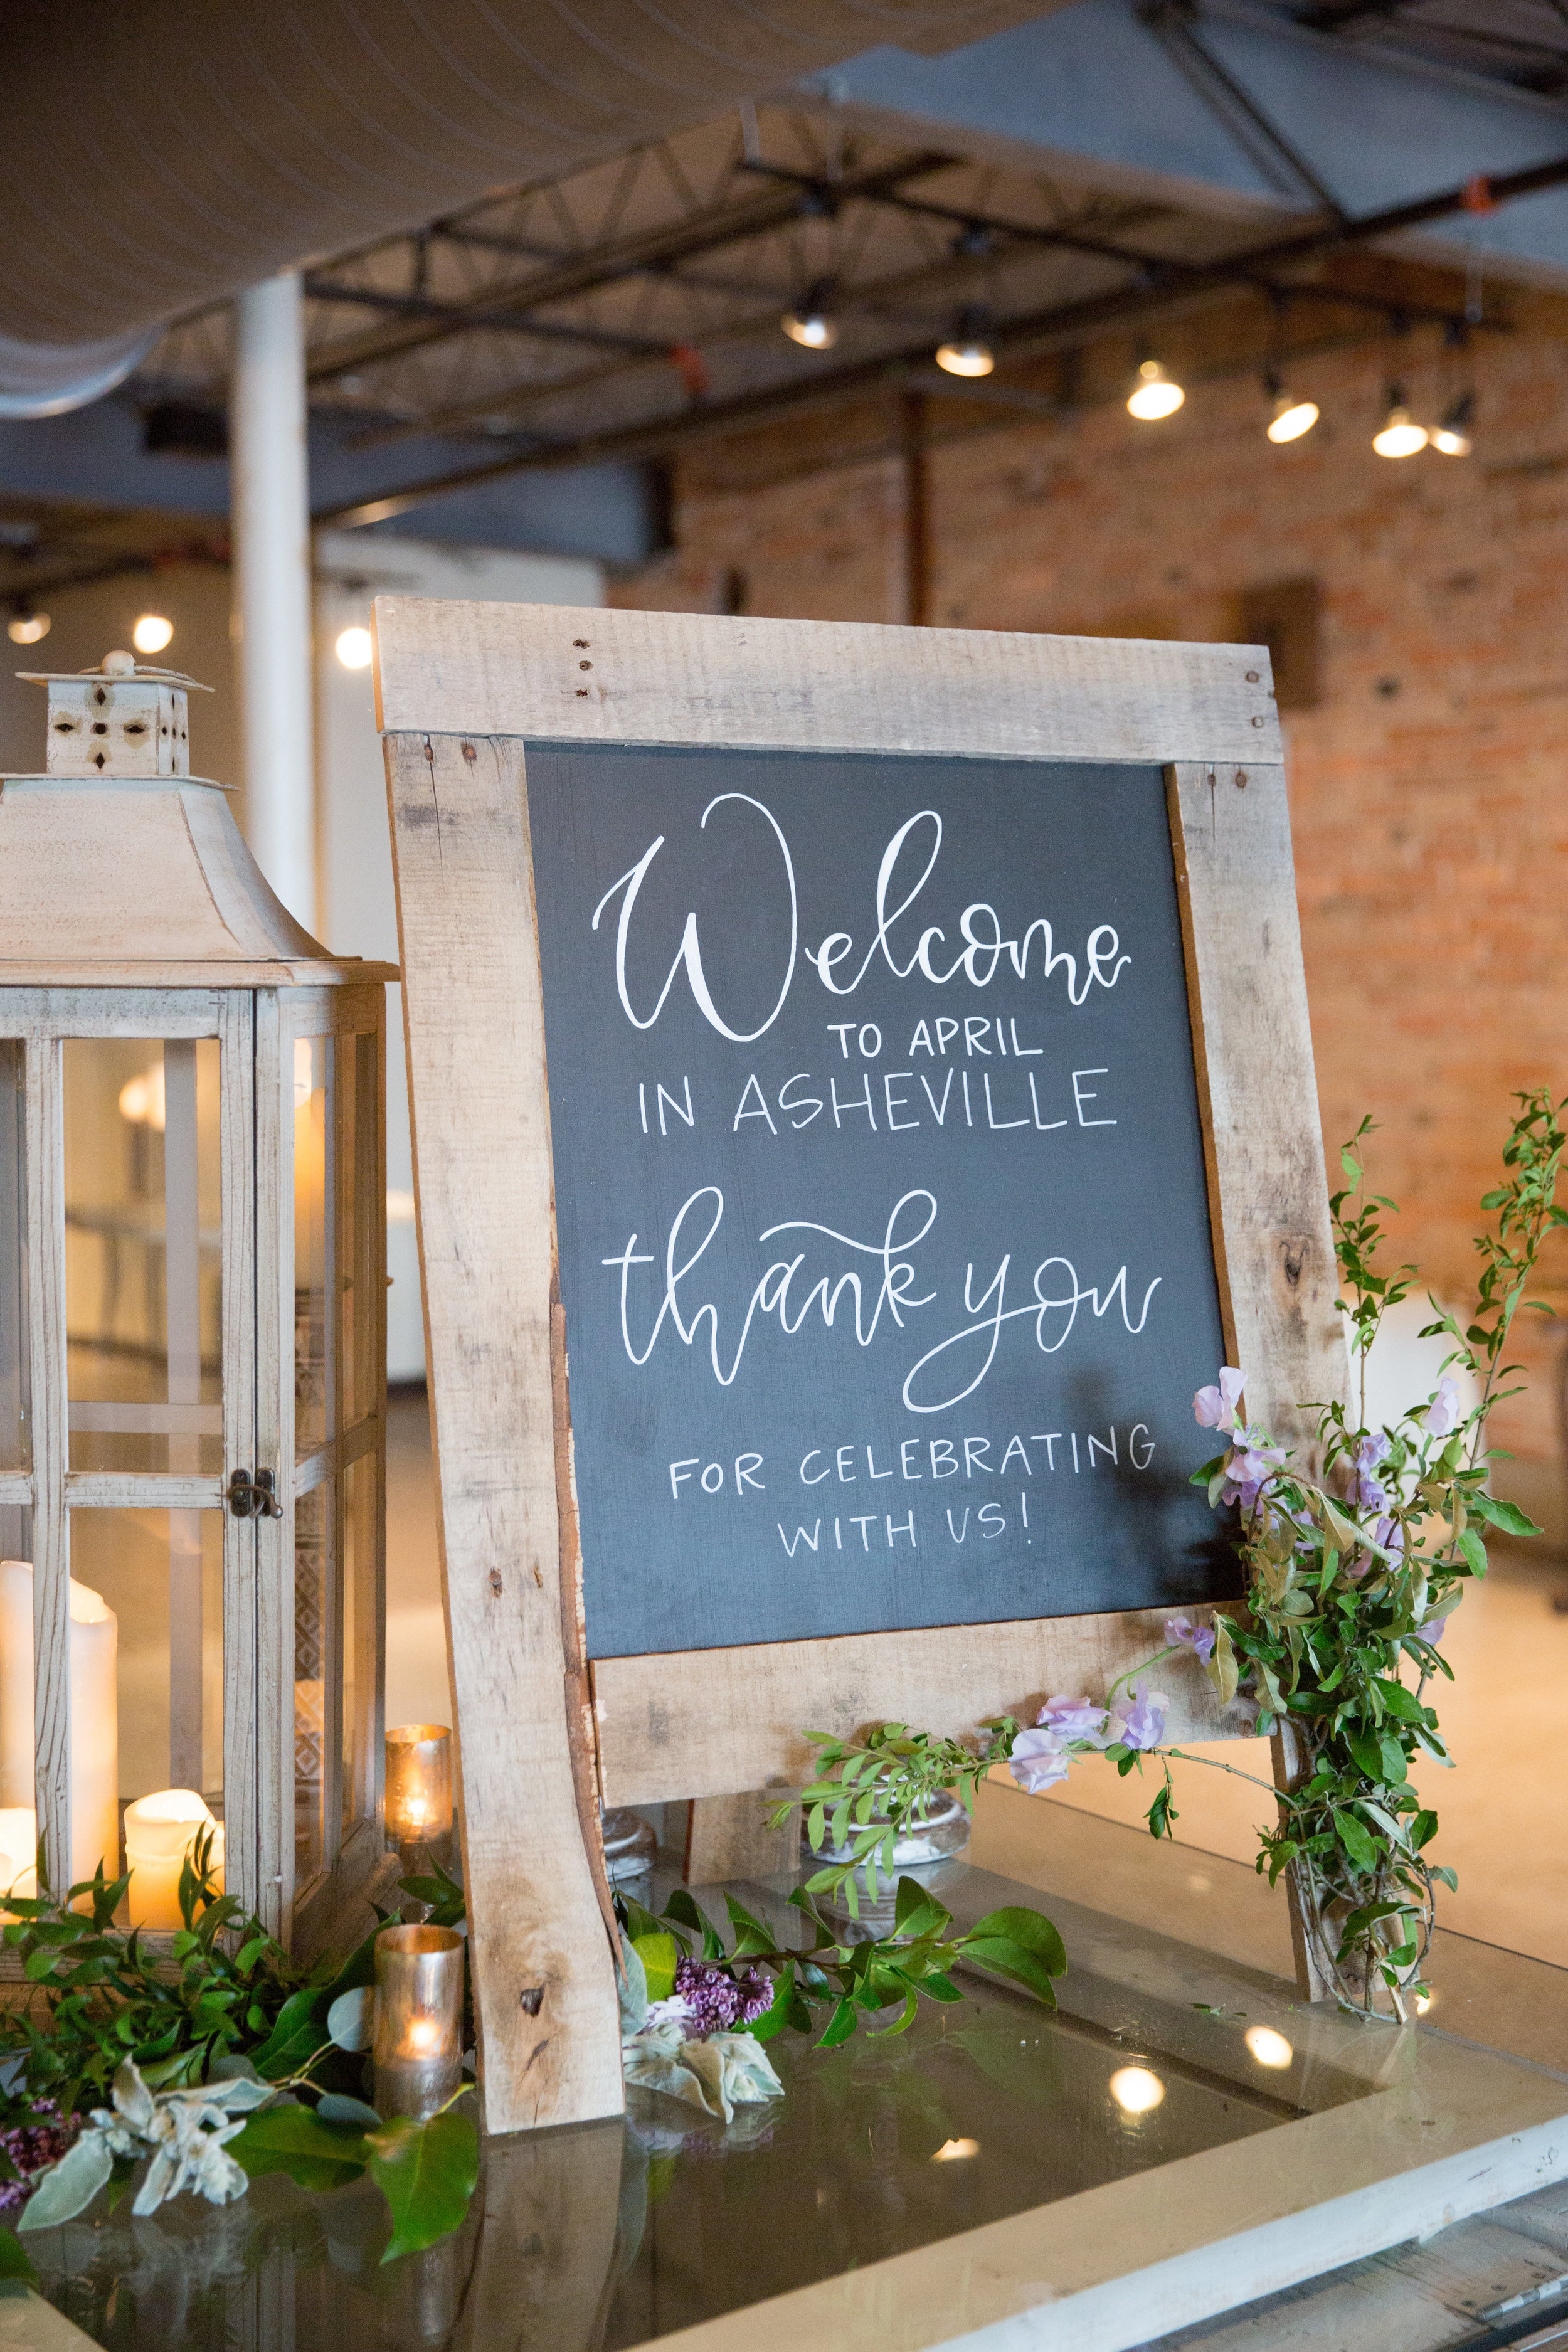 Engaged-Asheville-Joy-Unscripted-Wedding-Calligrapher-Realities-Photography-18.jpg